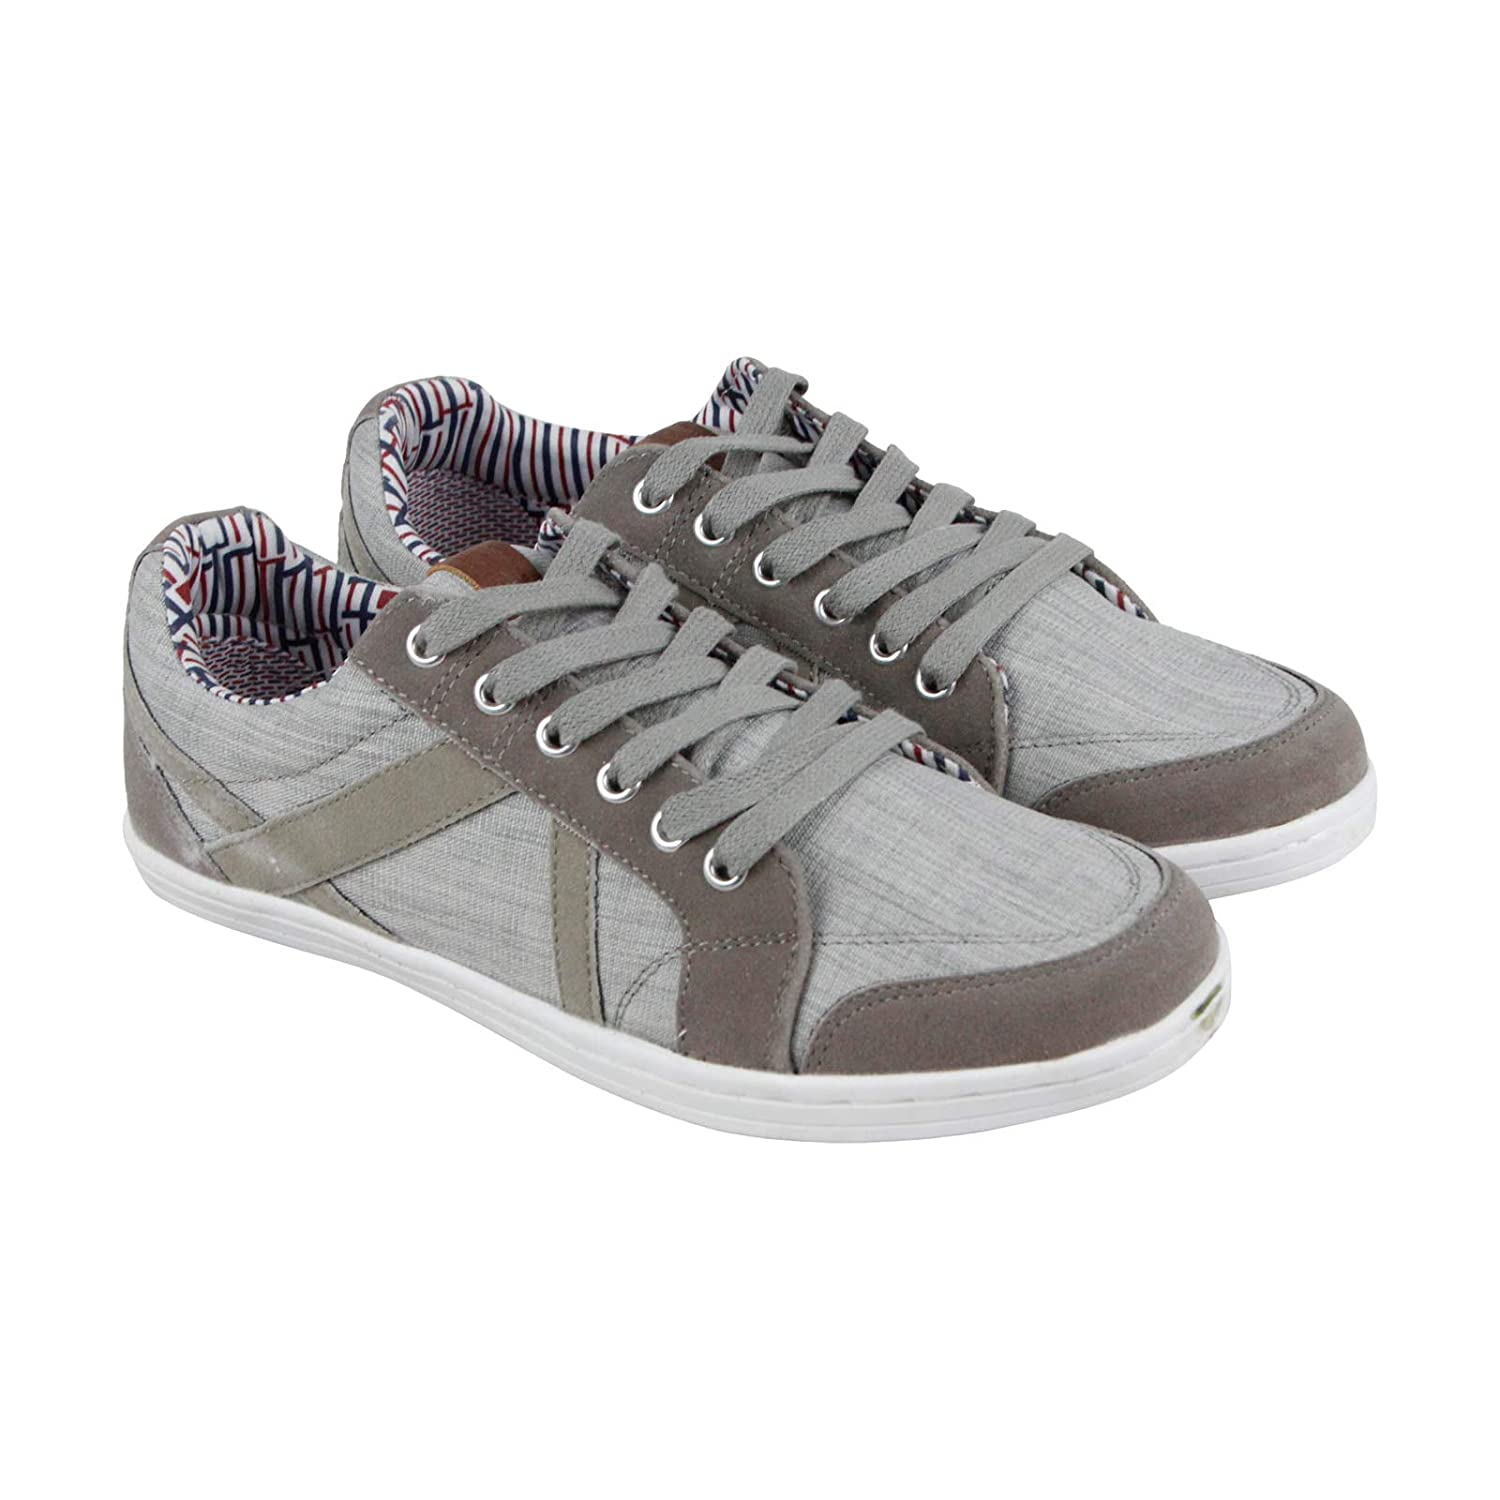 Ben Sherman Knox Mens Beige Textile Lace Up Sneakers Shoes